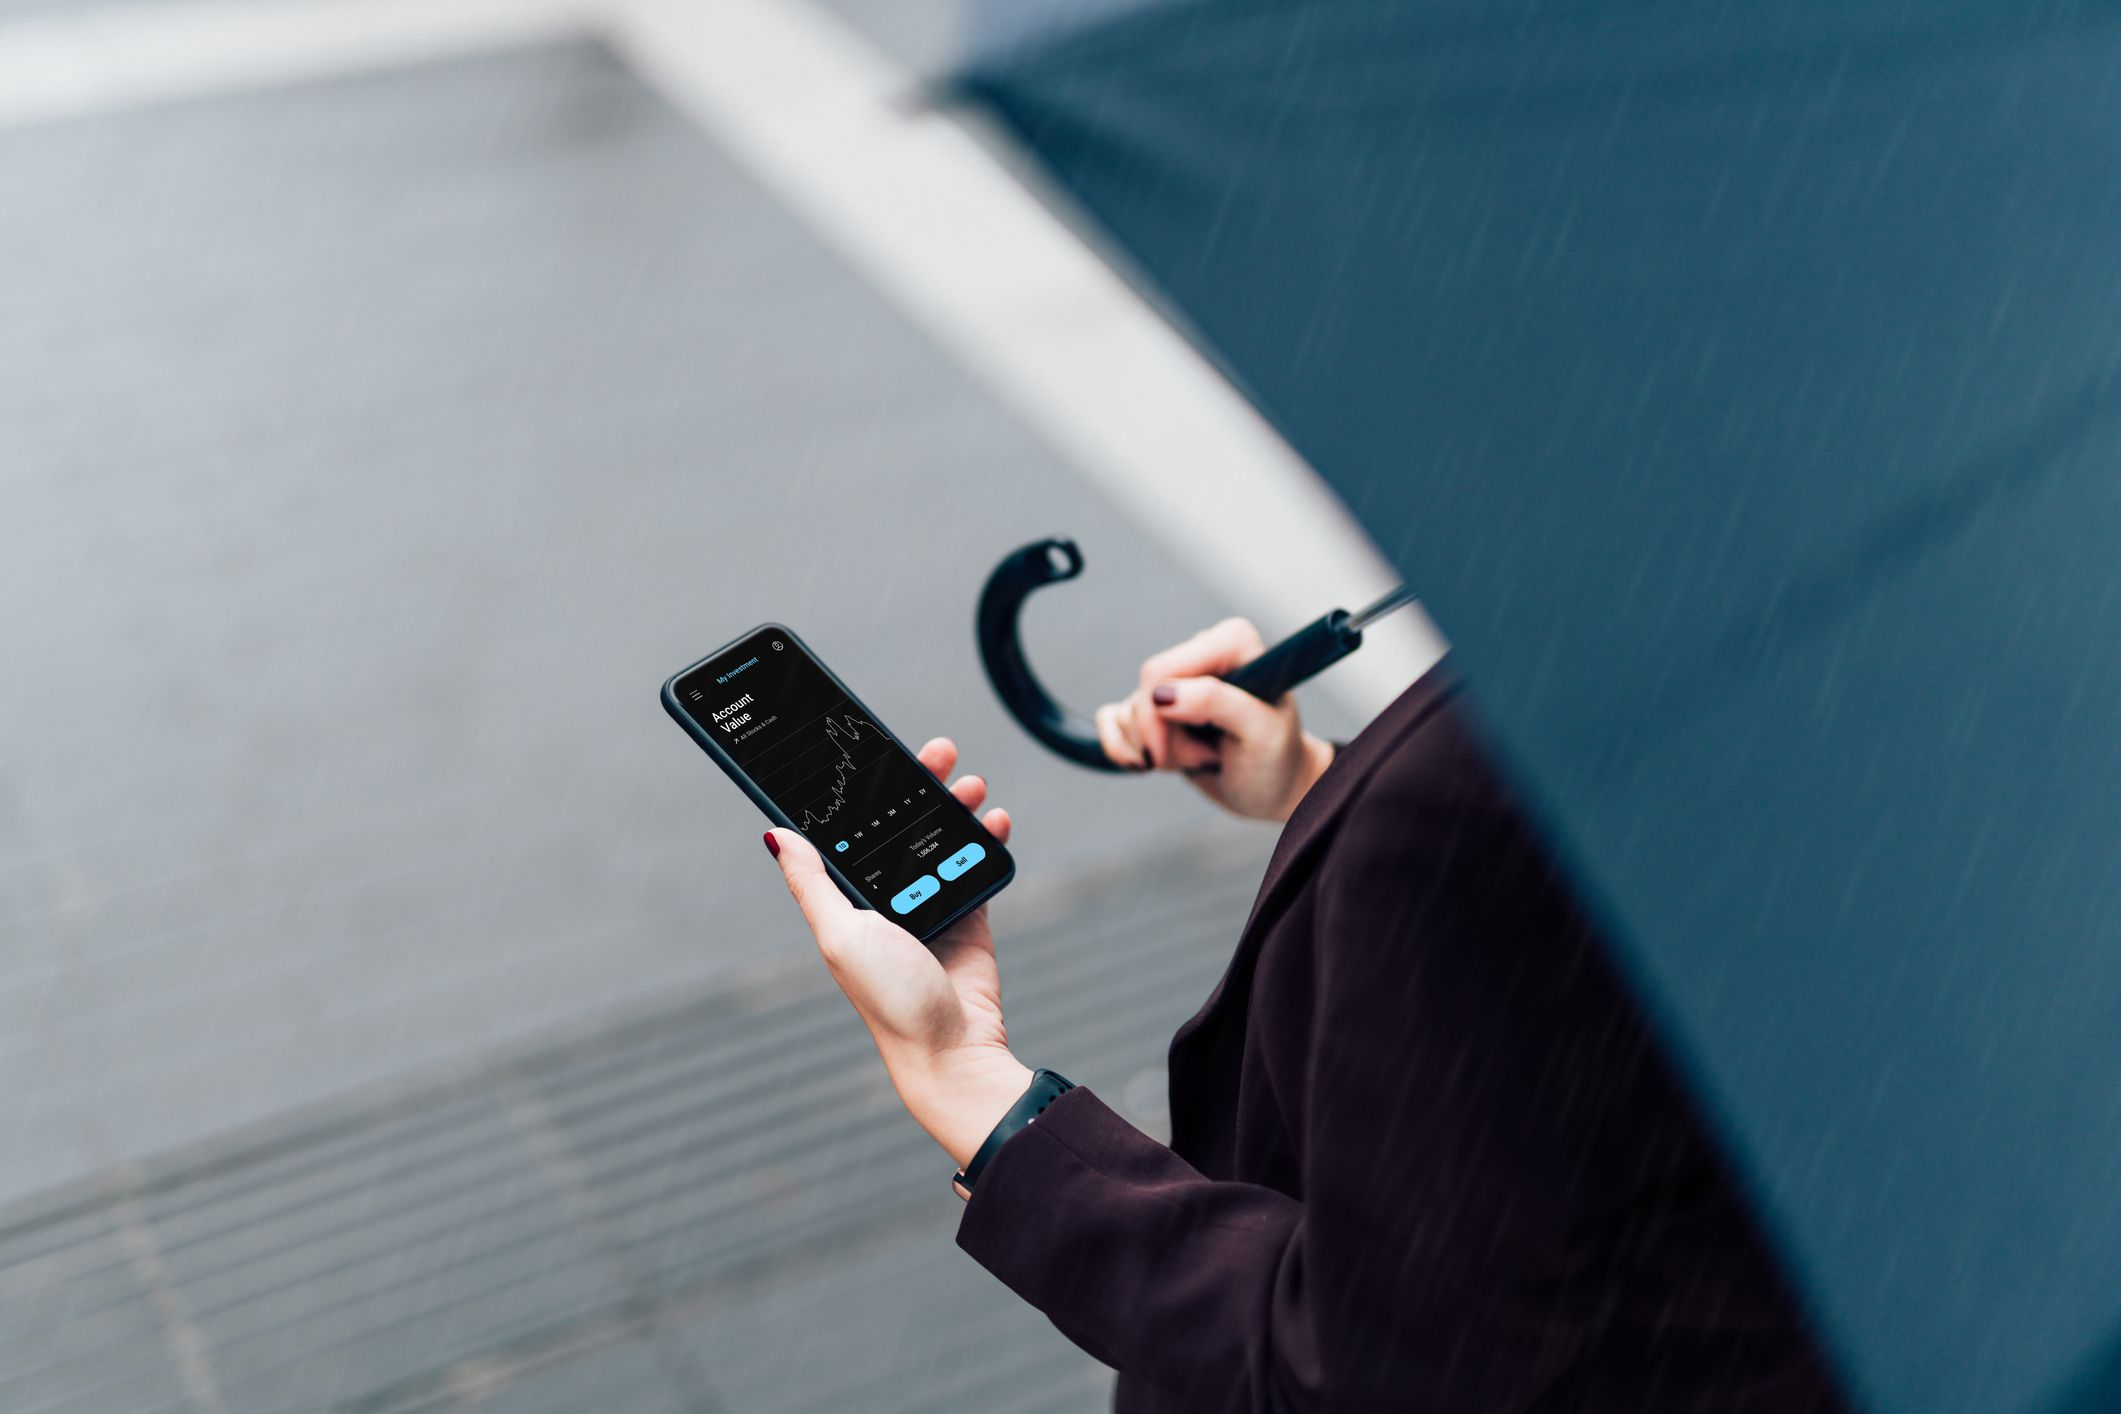 Someone holding an umbreall in the rain while also looking at a smartphone.